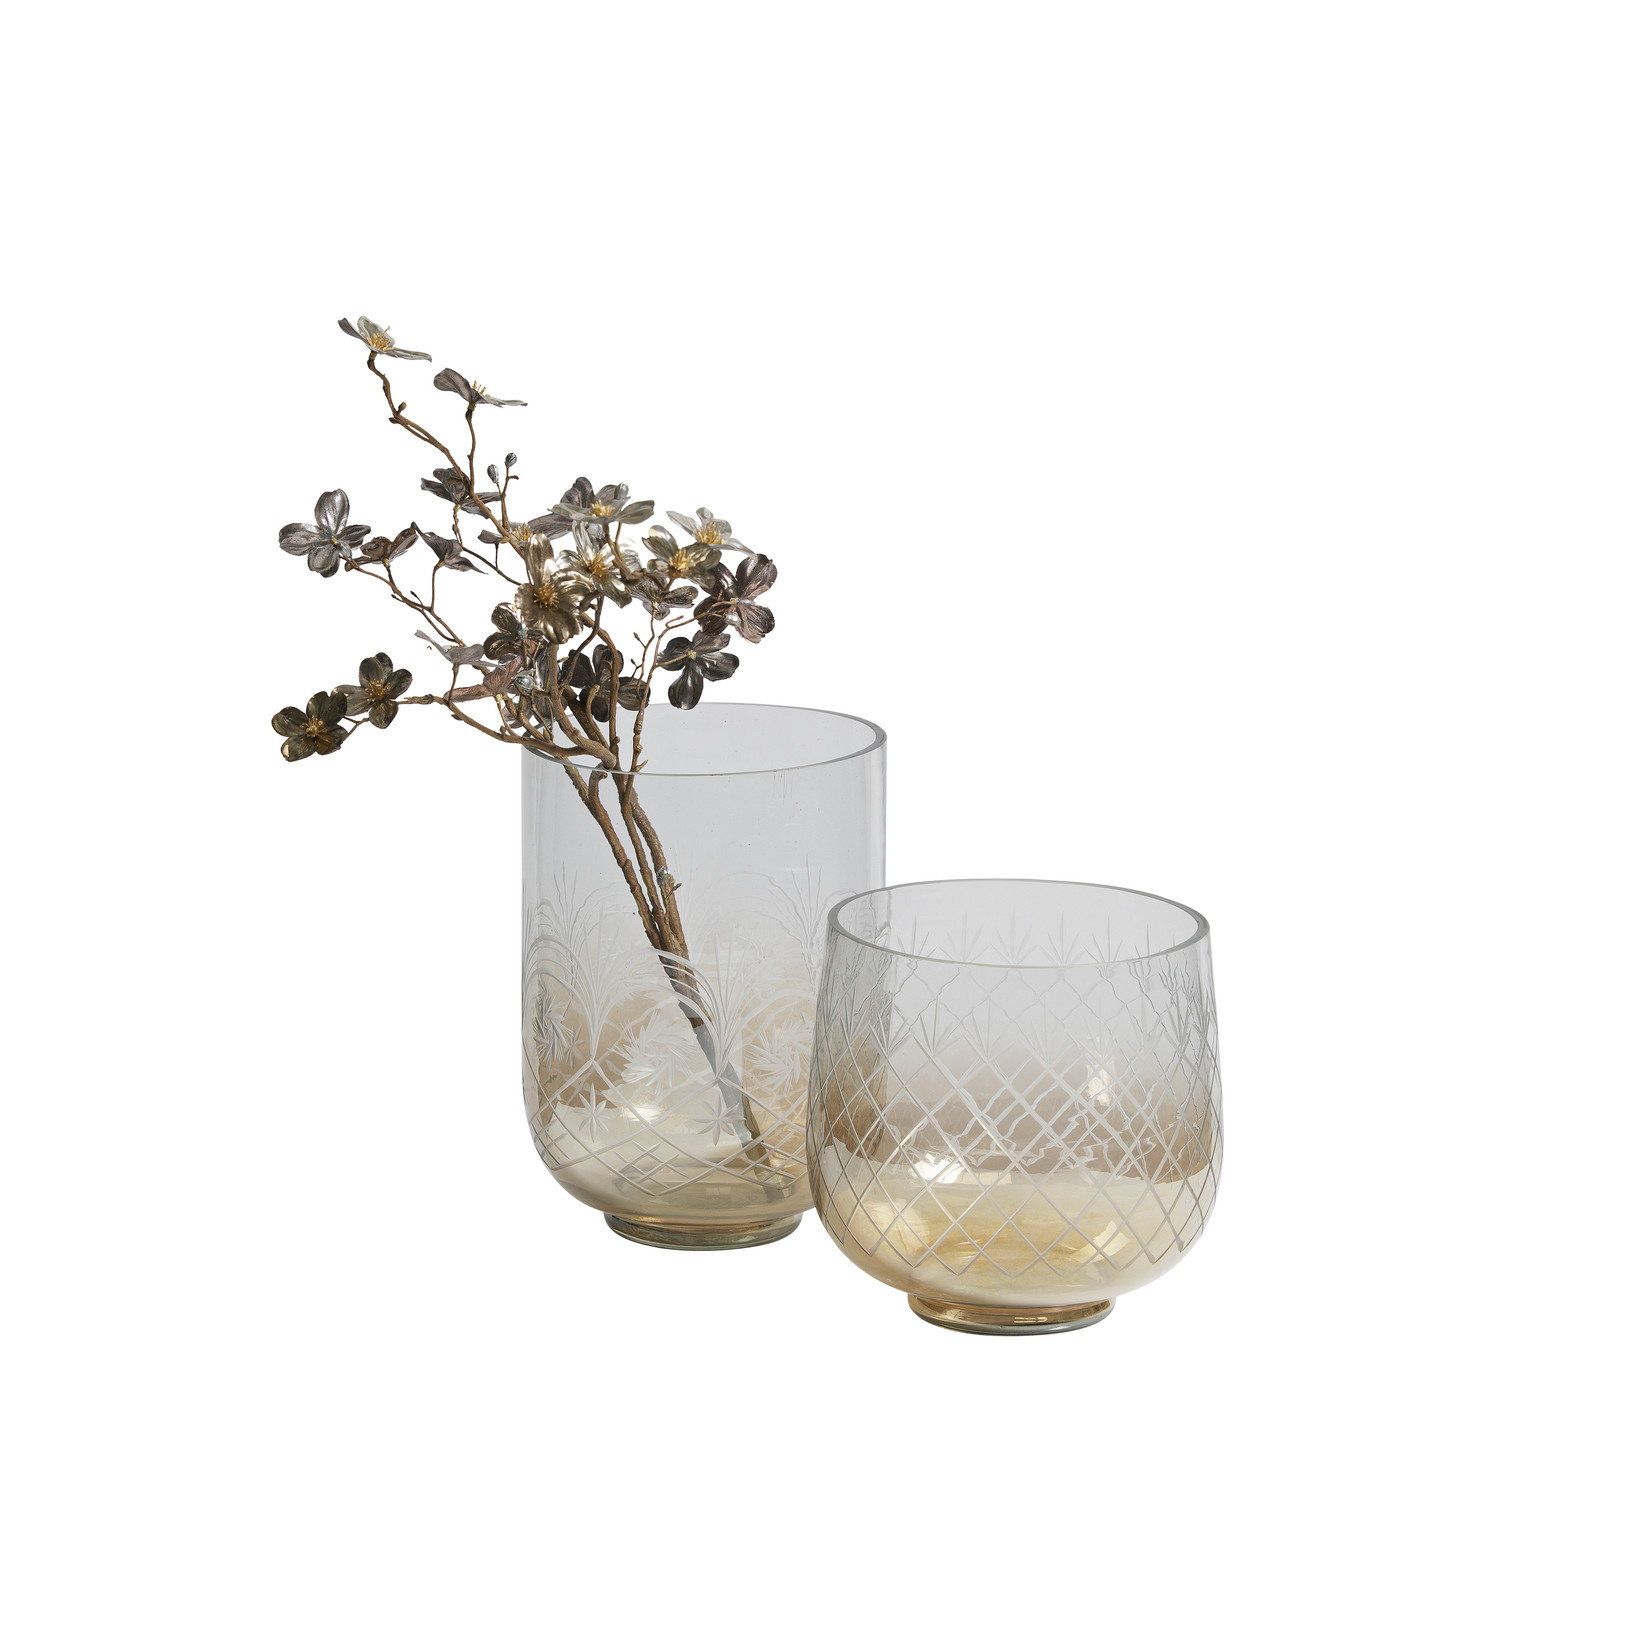 Be Pure Home Heirloom Vaas M Glas Met Bruine Glans*